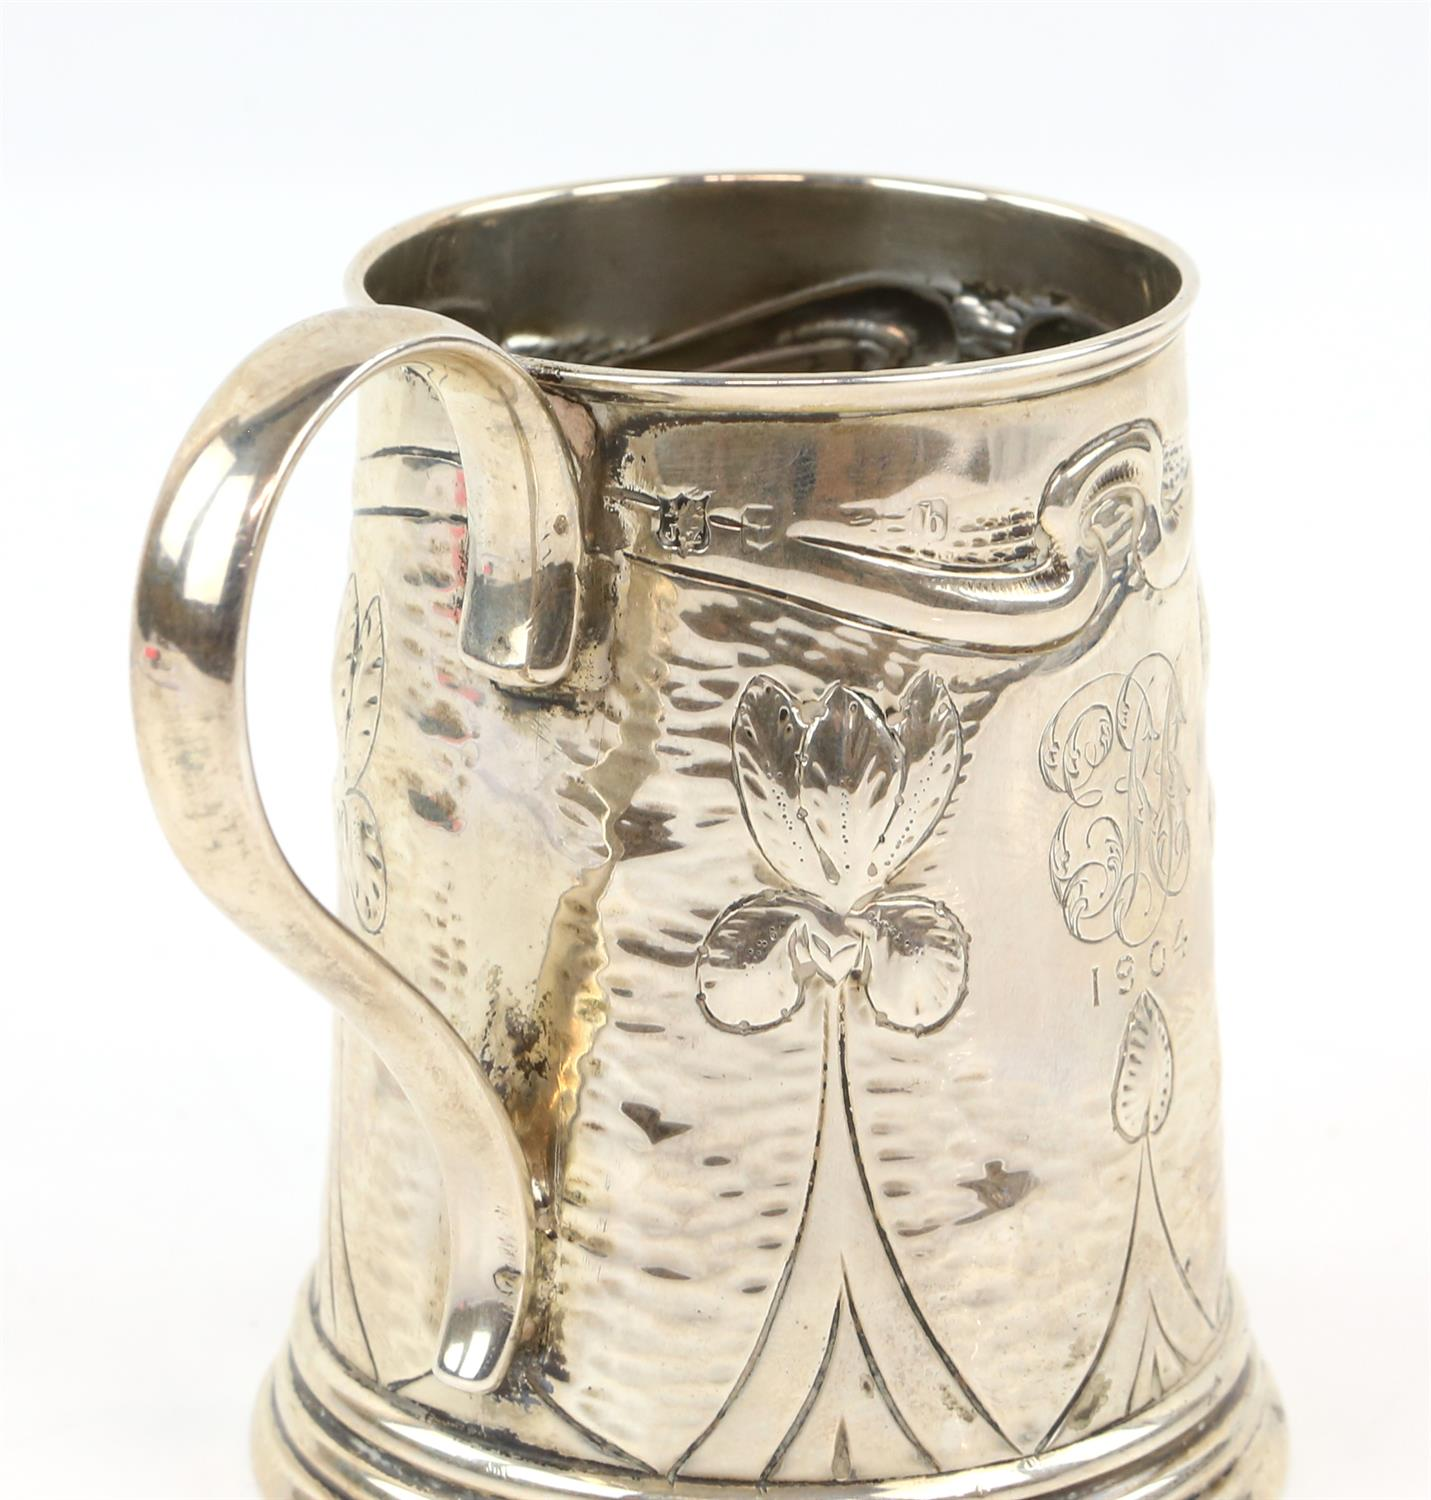 Arts and Crafts silver mug by A J Zimmerman, Birmingham 1901 - Image 2 of 2